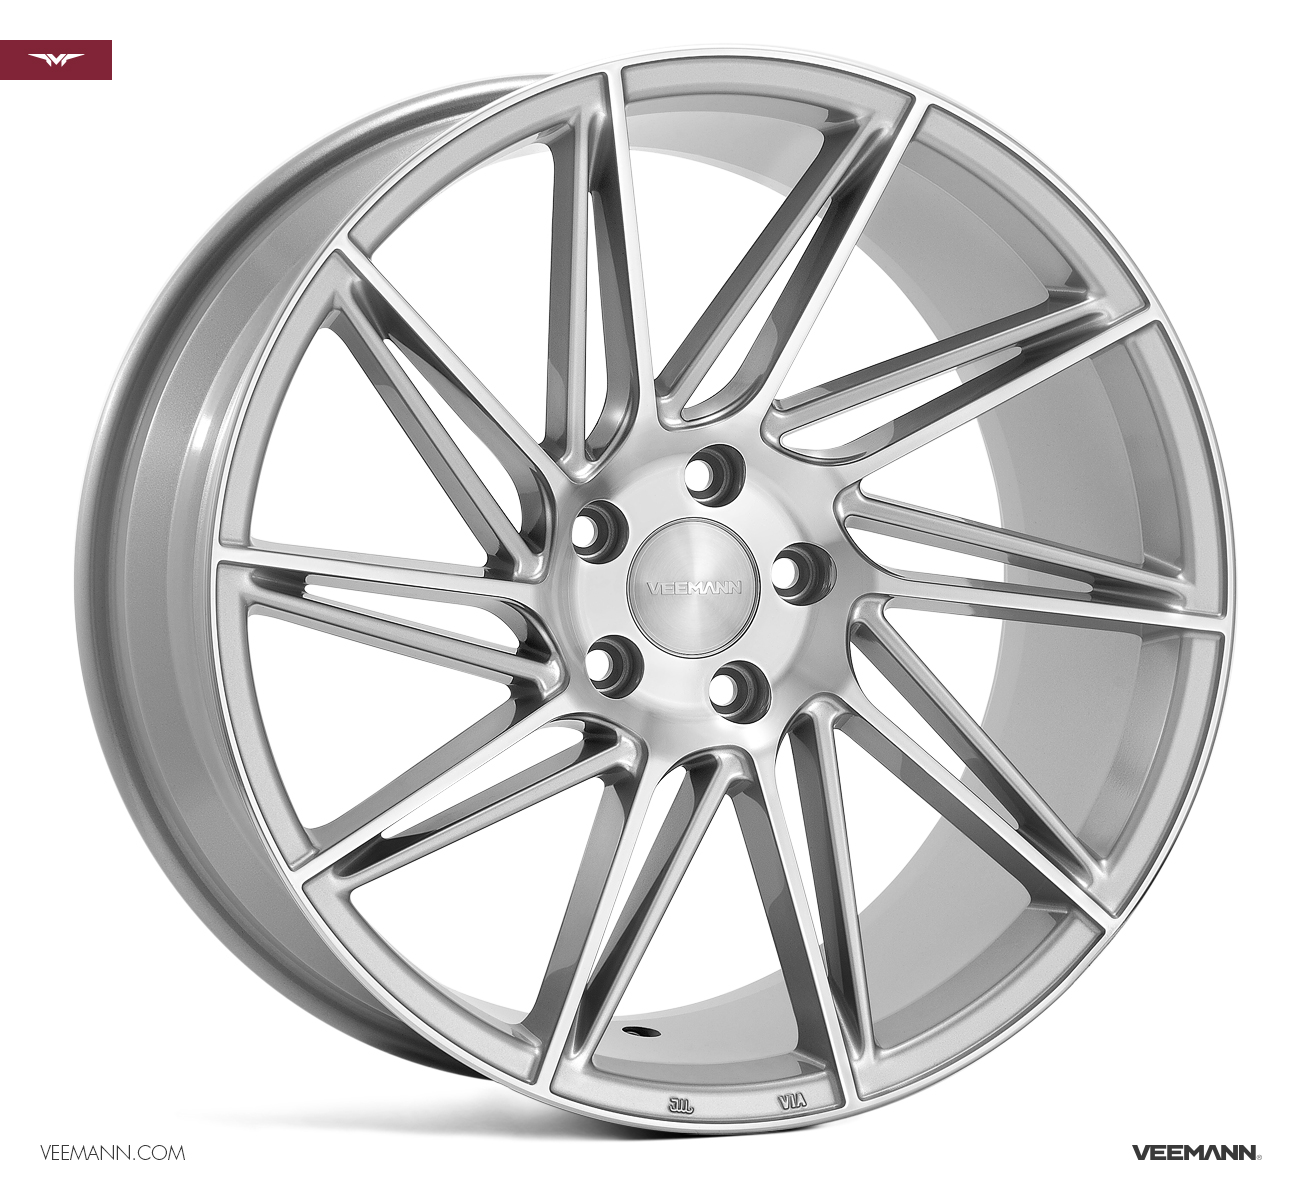 "NEW 19"" VEEMANN V-FS26 DIRECTIONAL ALLOYS IN SILVER POL WITH WIDER 9.5"" REARS"